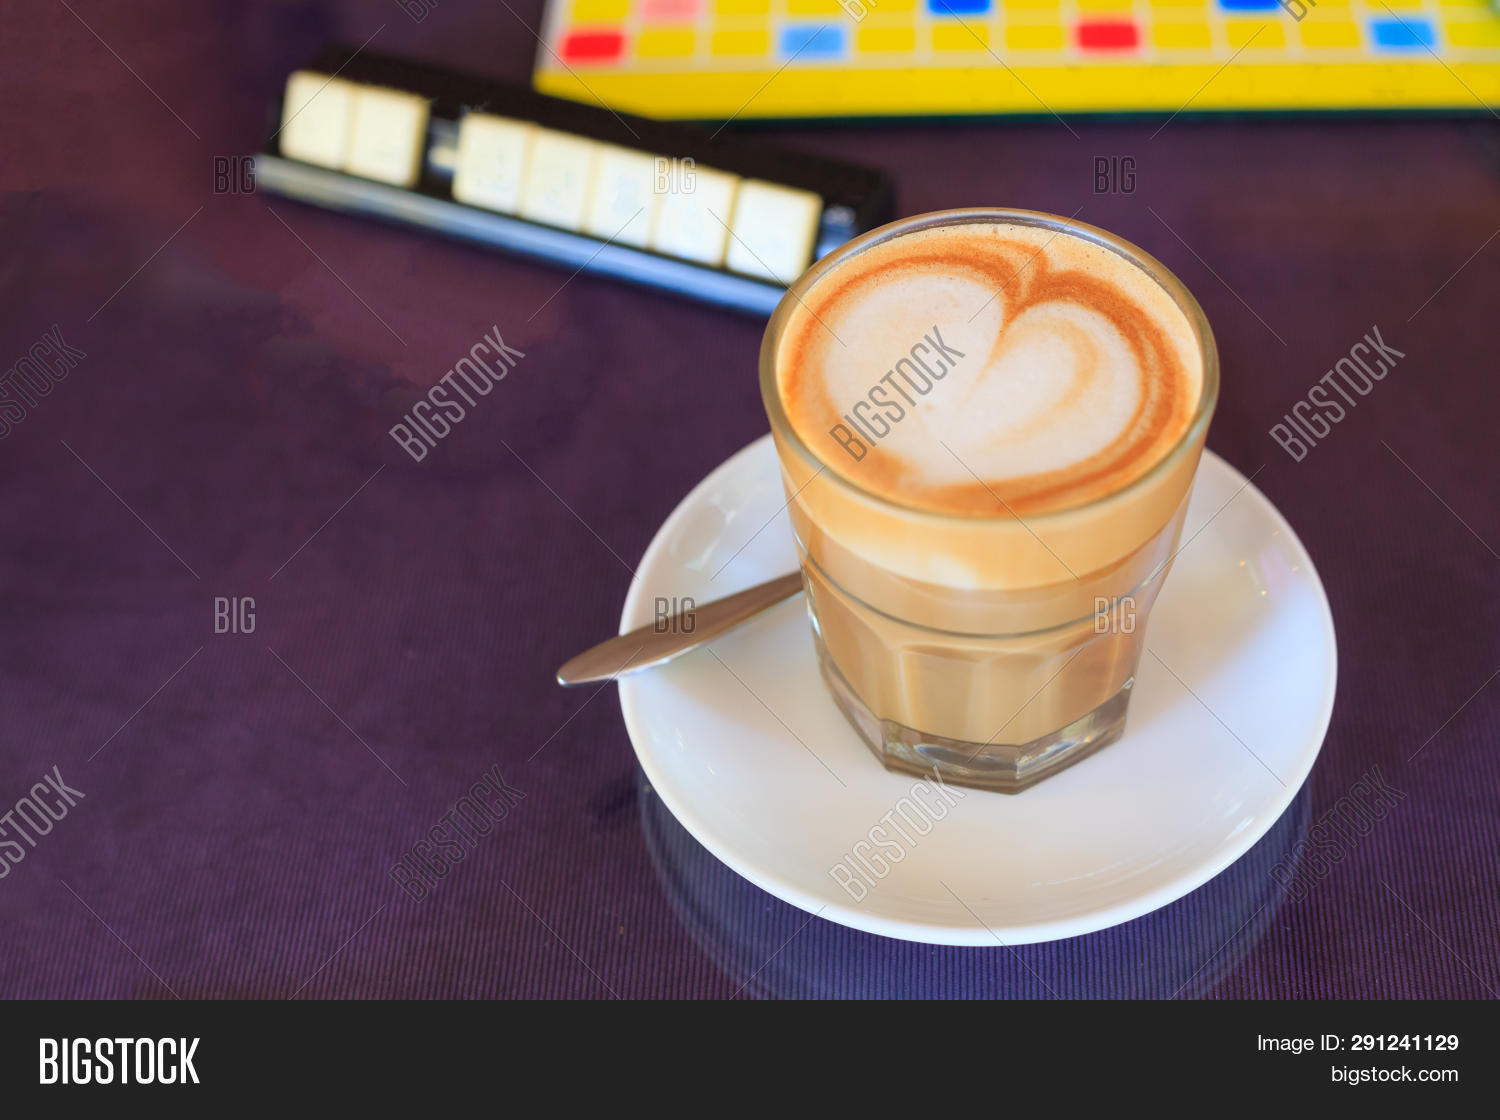 Hot Brown Caffe Latte Image Photo Free Trial Bigstock